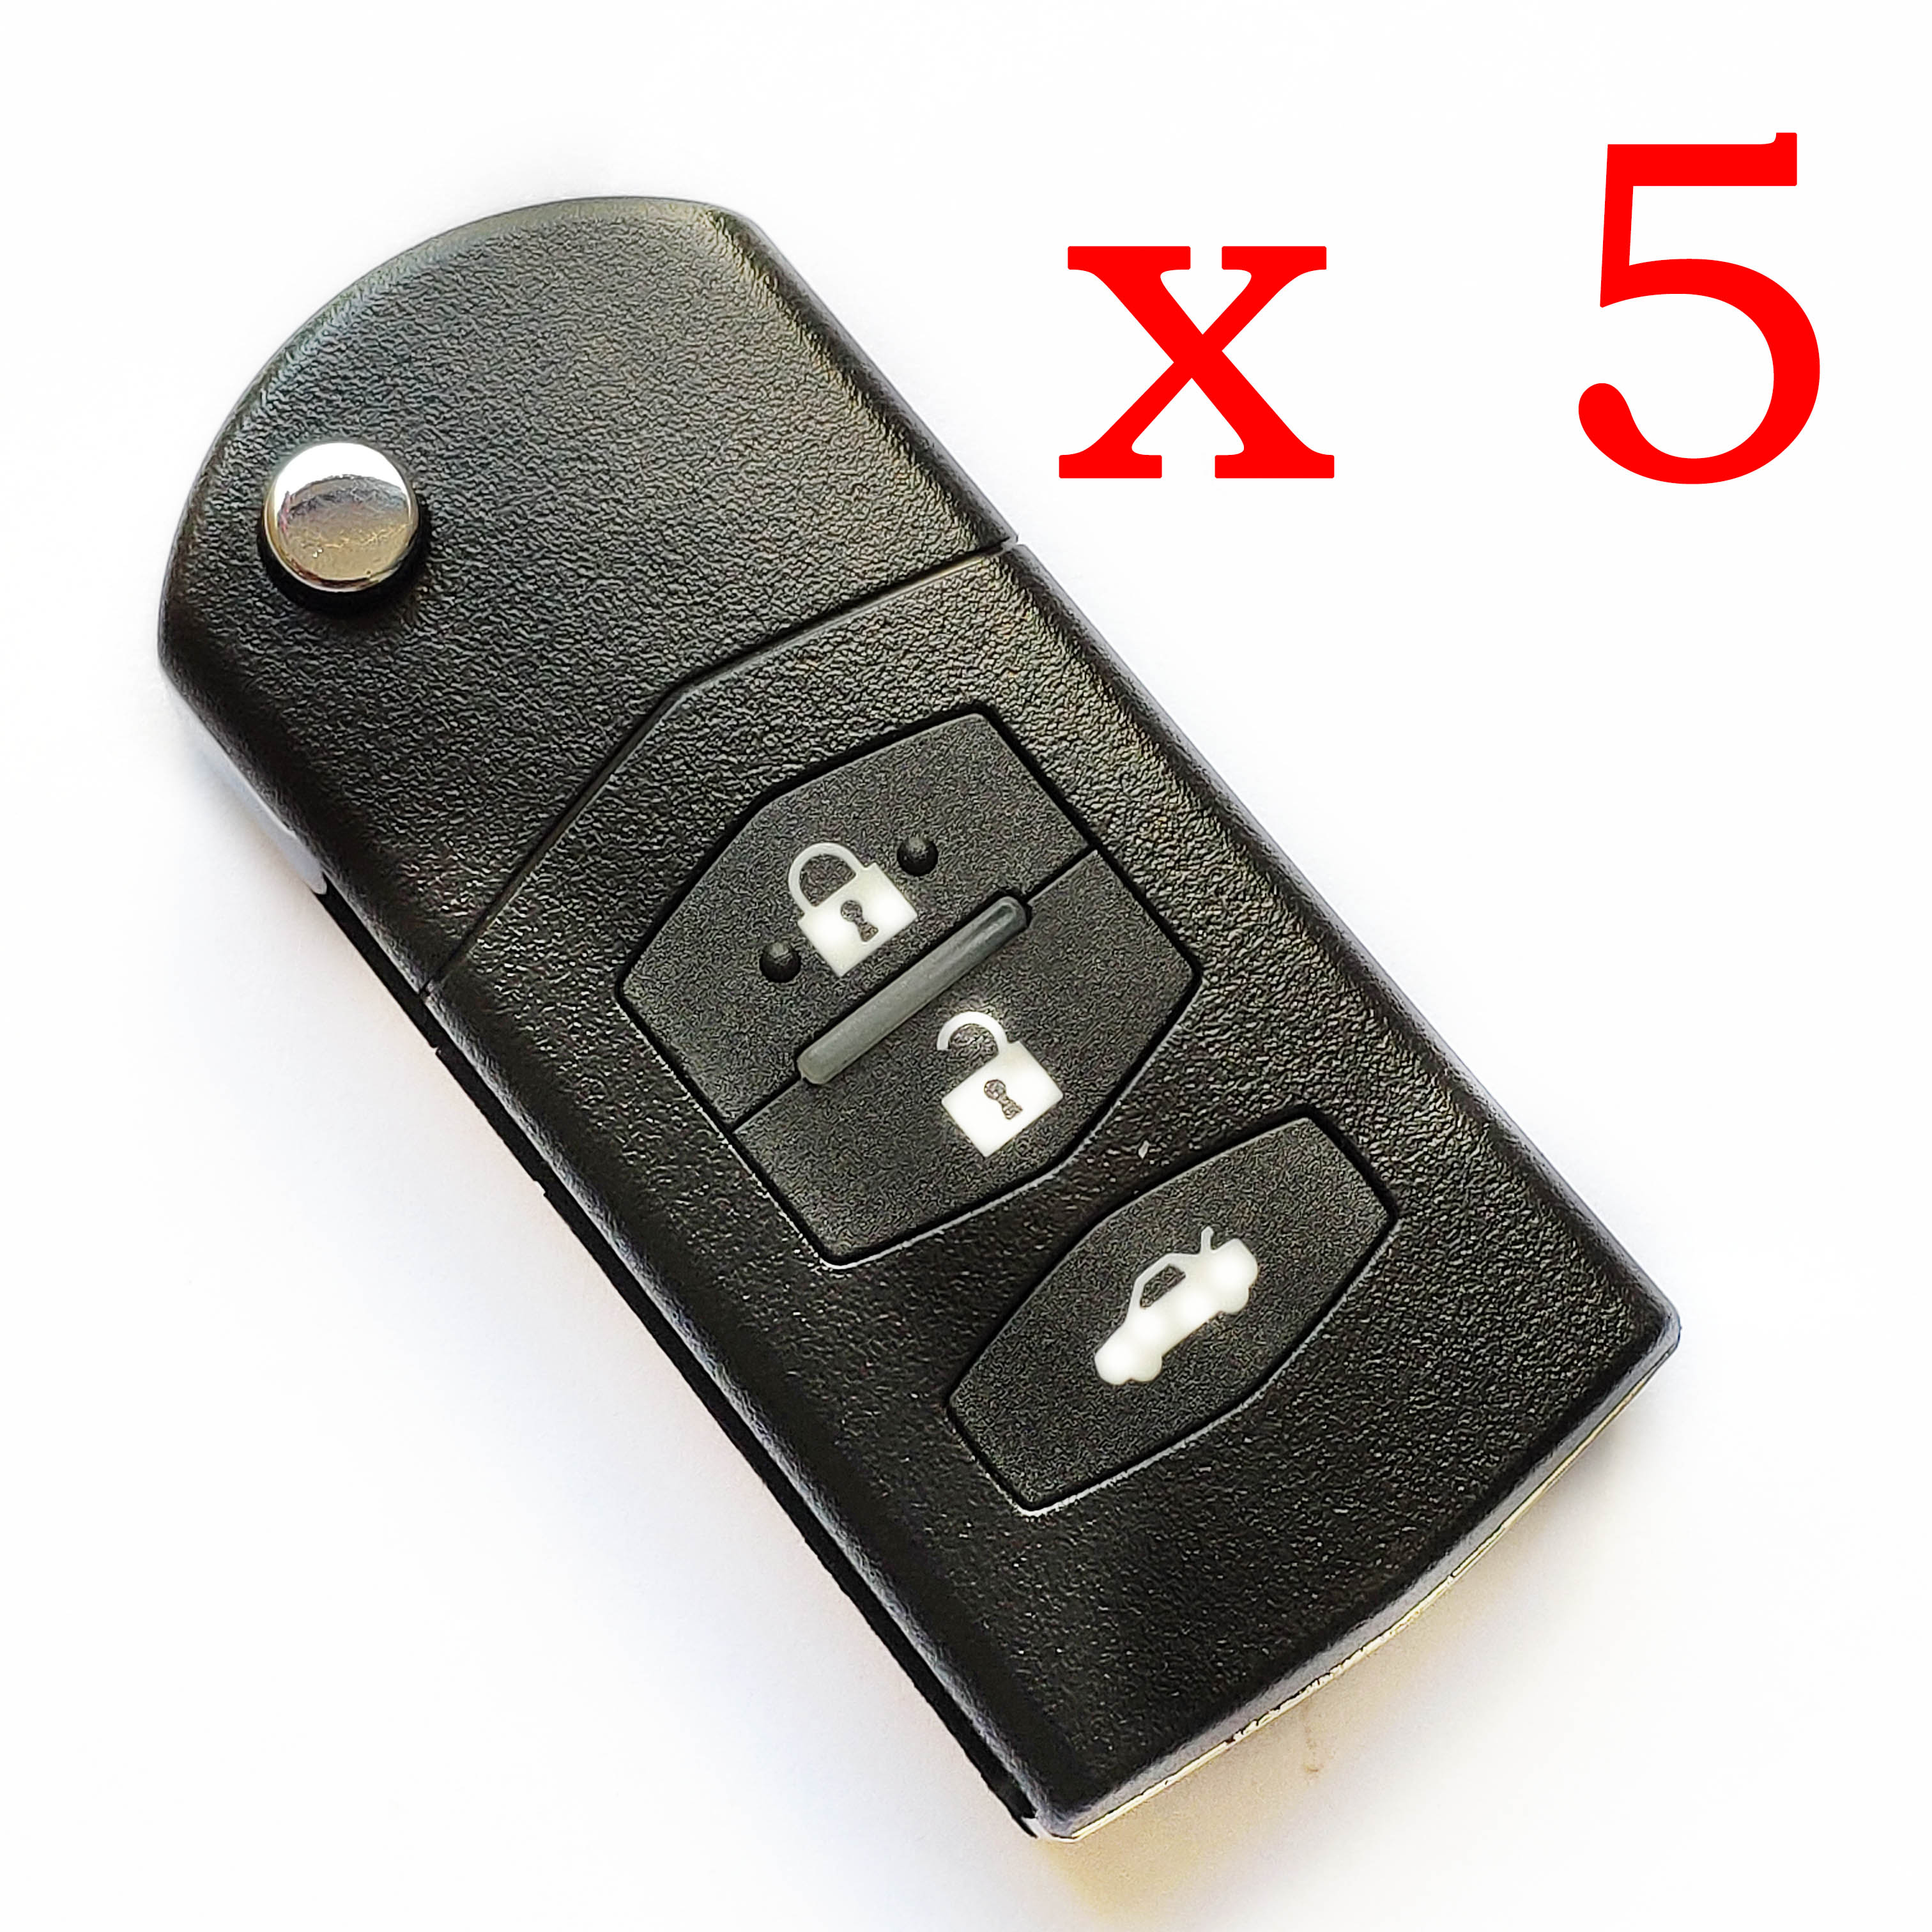 5 pieces Xhorse VVDI 3 Buttons Mazda Type Universal Remote Control - with Blades & Logos